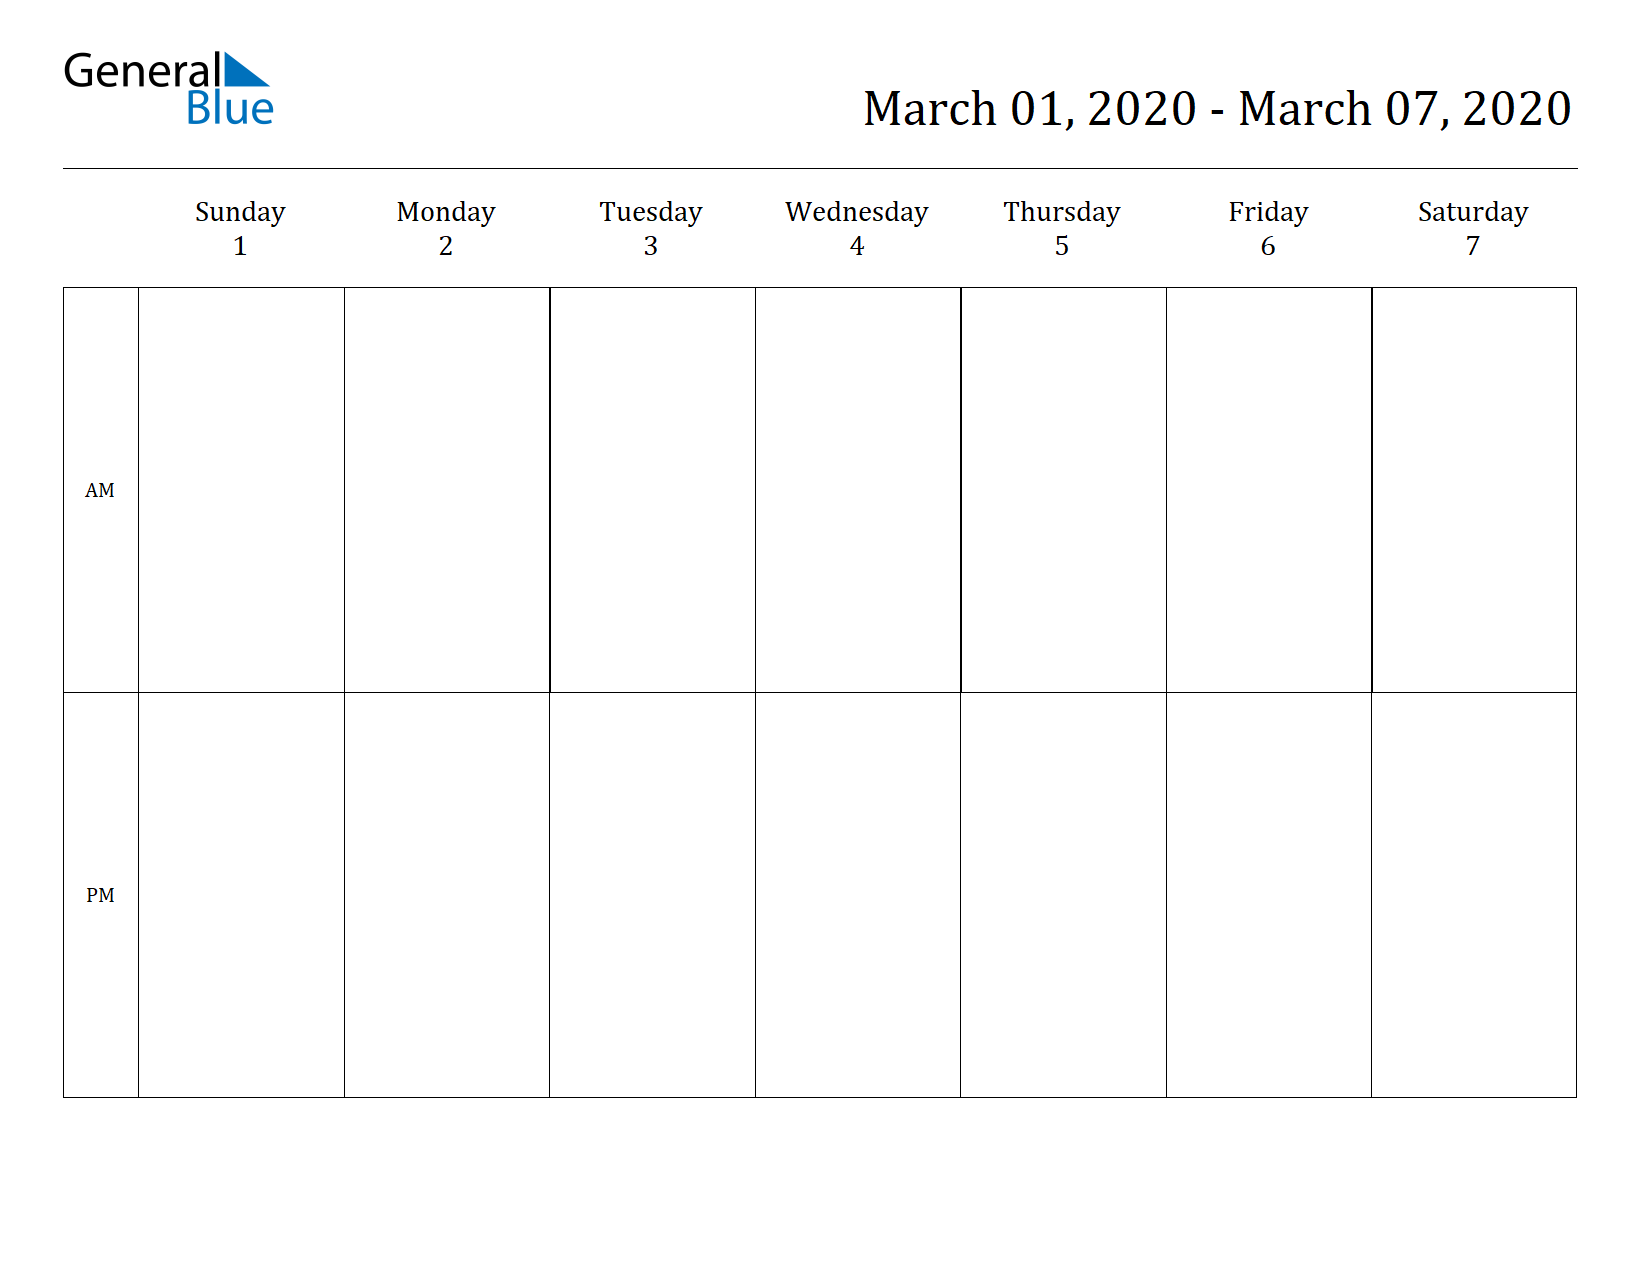 Weekly Calendar for Mar 01, 2020 to Mar 07, 2020